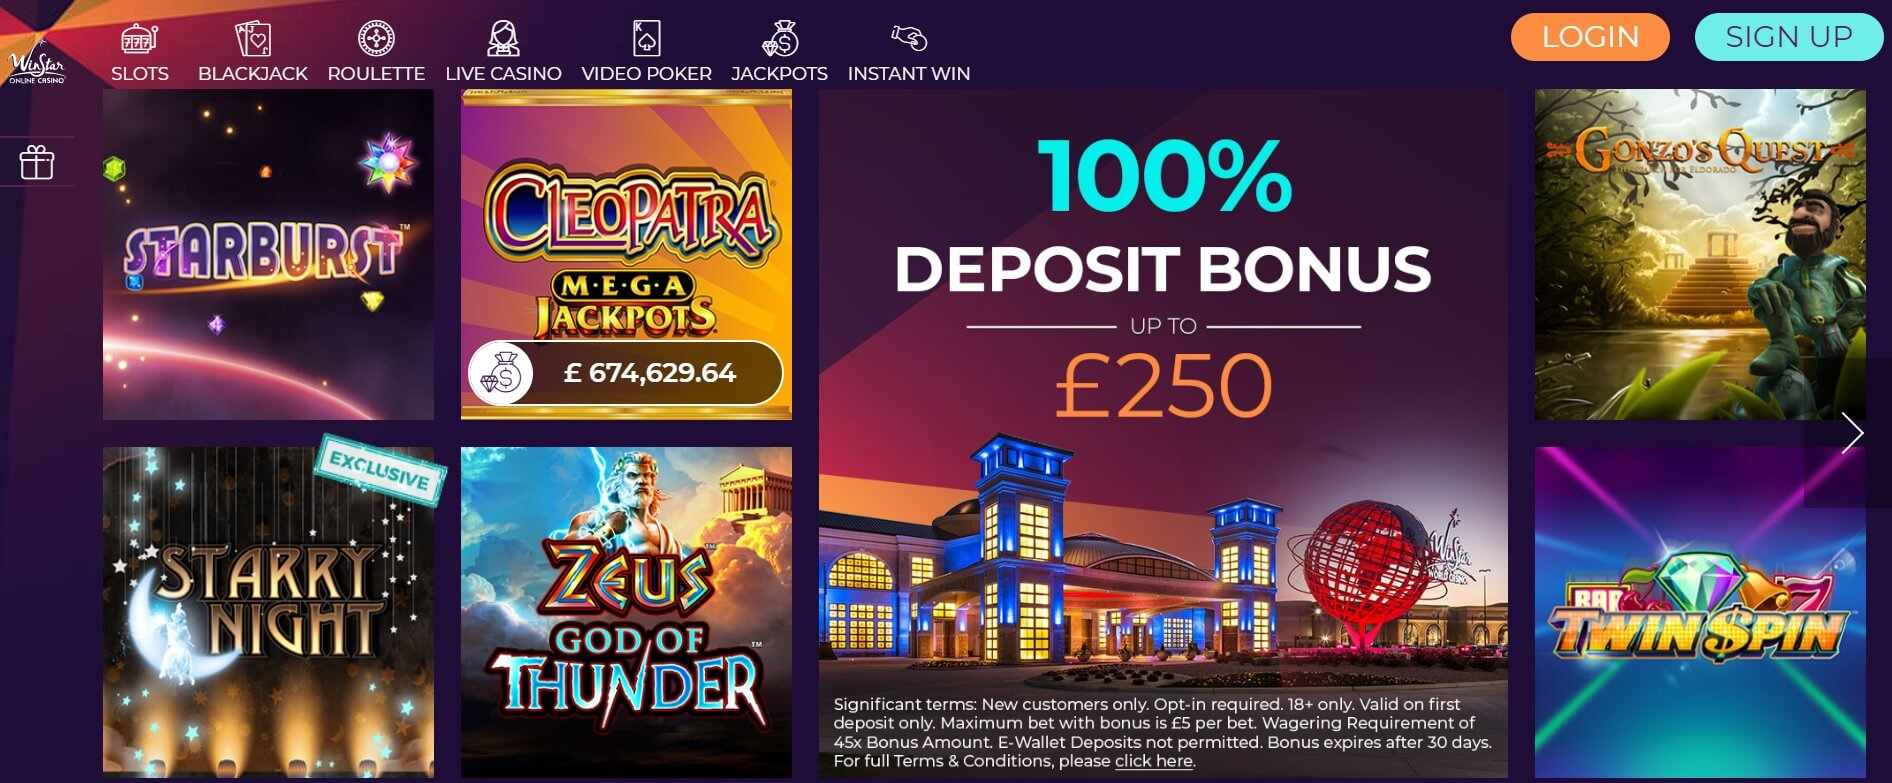 winstar casino games and slots screen shot